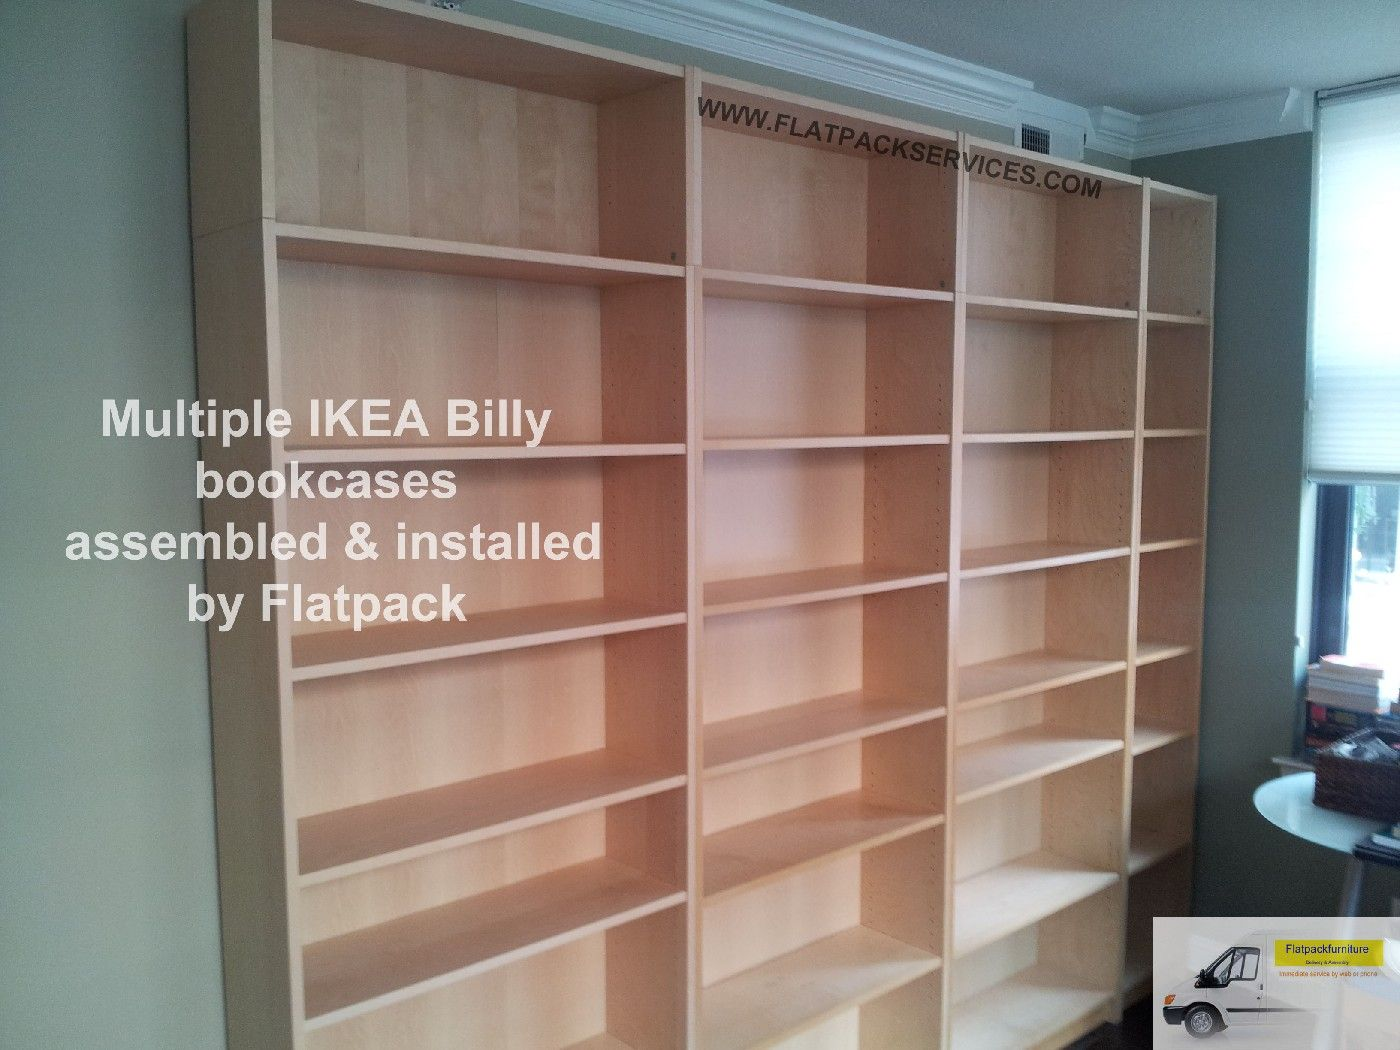 IKEA Billy Bookcase assembly by Flatpack in Arlington, VA